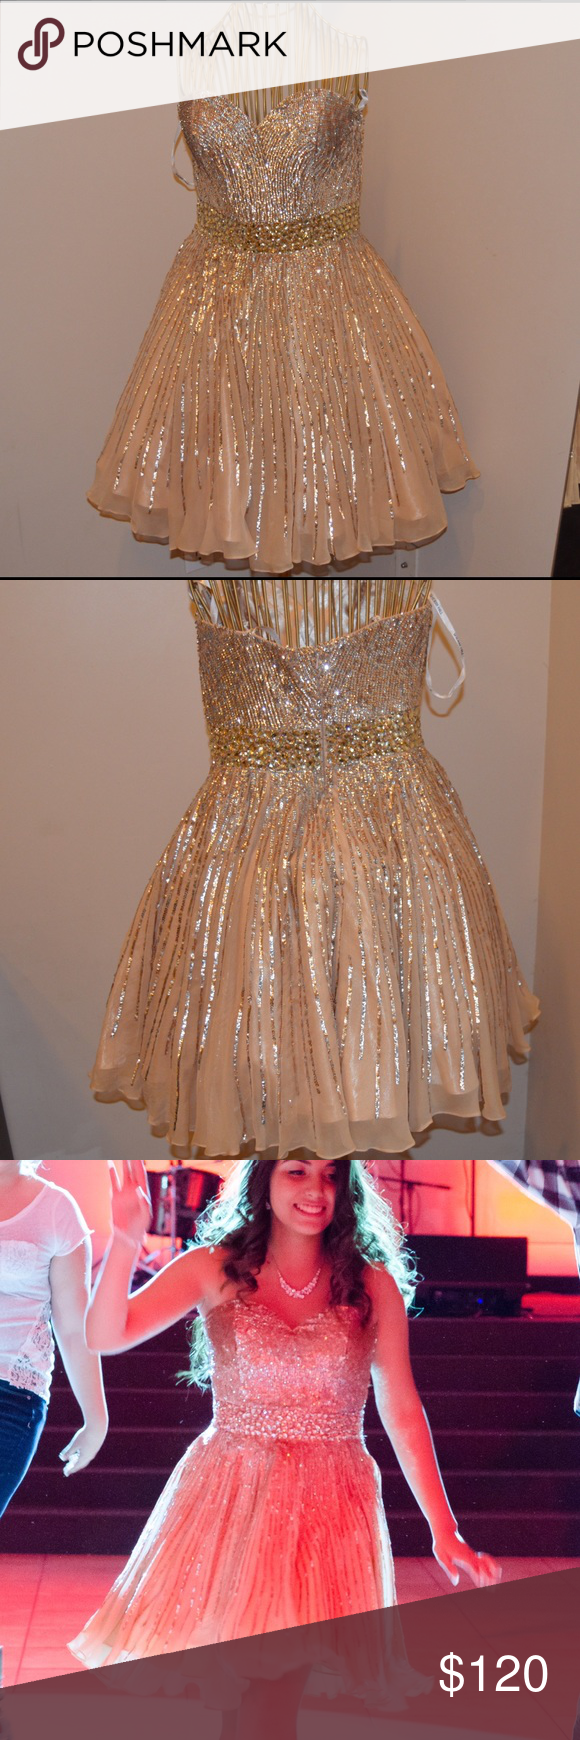 Gold Sherri Hill Dress Beautiful Short gold and silver dress, only worn once , slight snags but nothing noticeable at all , couldn't even find them to include picture , size 6. Also the small clasp at the top is gone but can be easily fixed. Non smoking household Sherri Hill Dresses Strapless